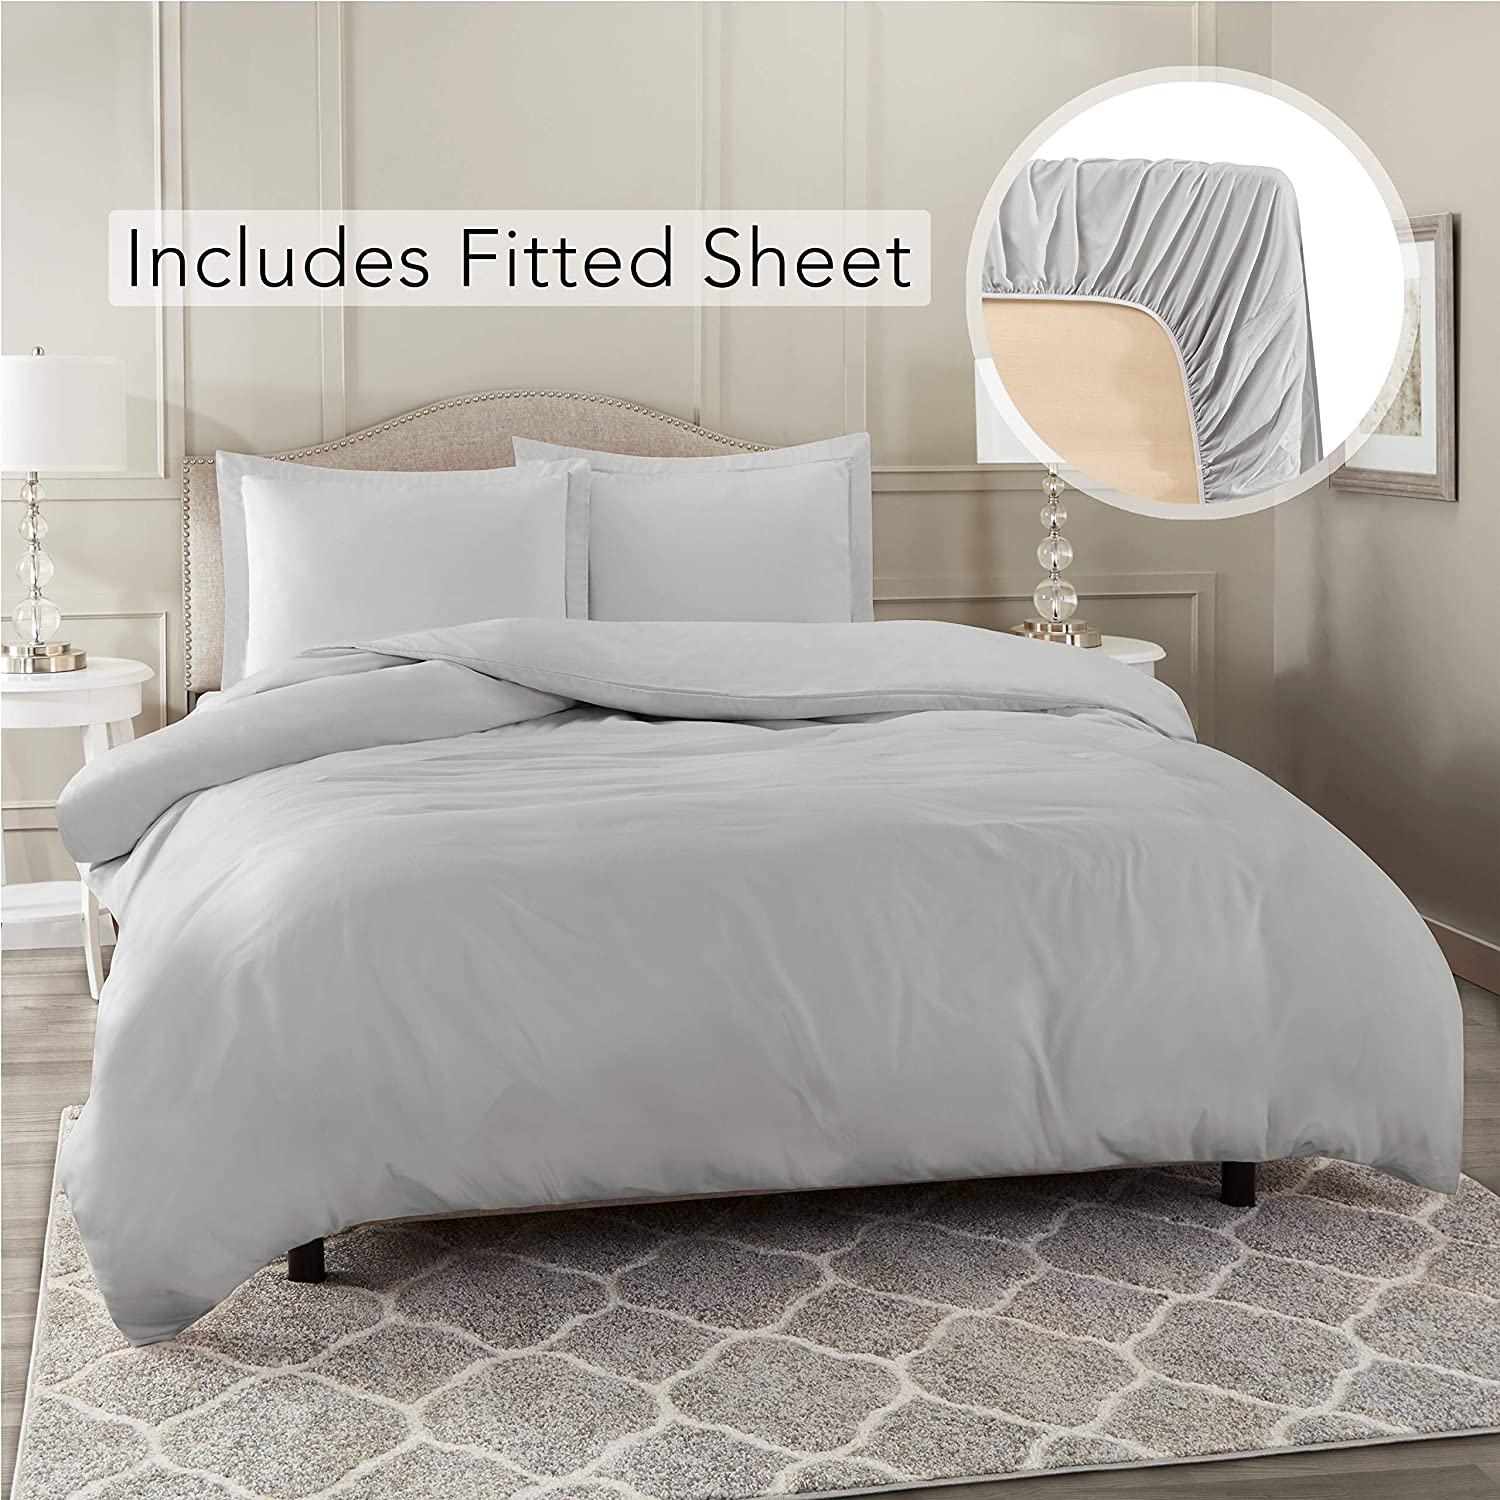 Nestl Bedding Duvet Cover with Fitted Sheet 4 Piece Set - Soft Double Brushed Microfiber Hotel Collection - Comforter Cover with Button Closure, Fitted Sheet, 2 Pillow Shams, King - Silver